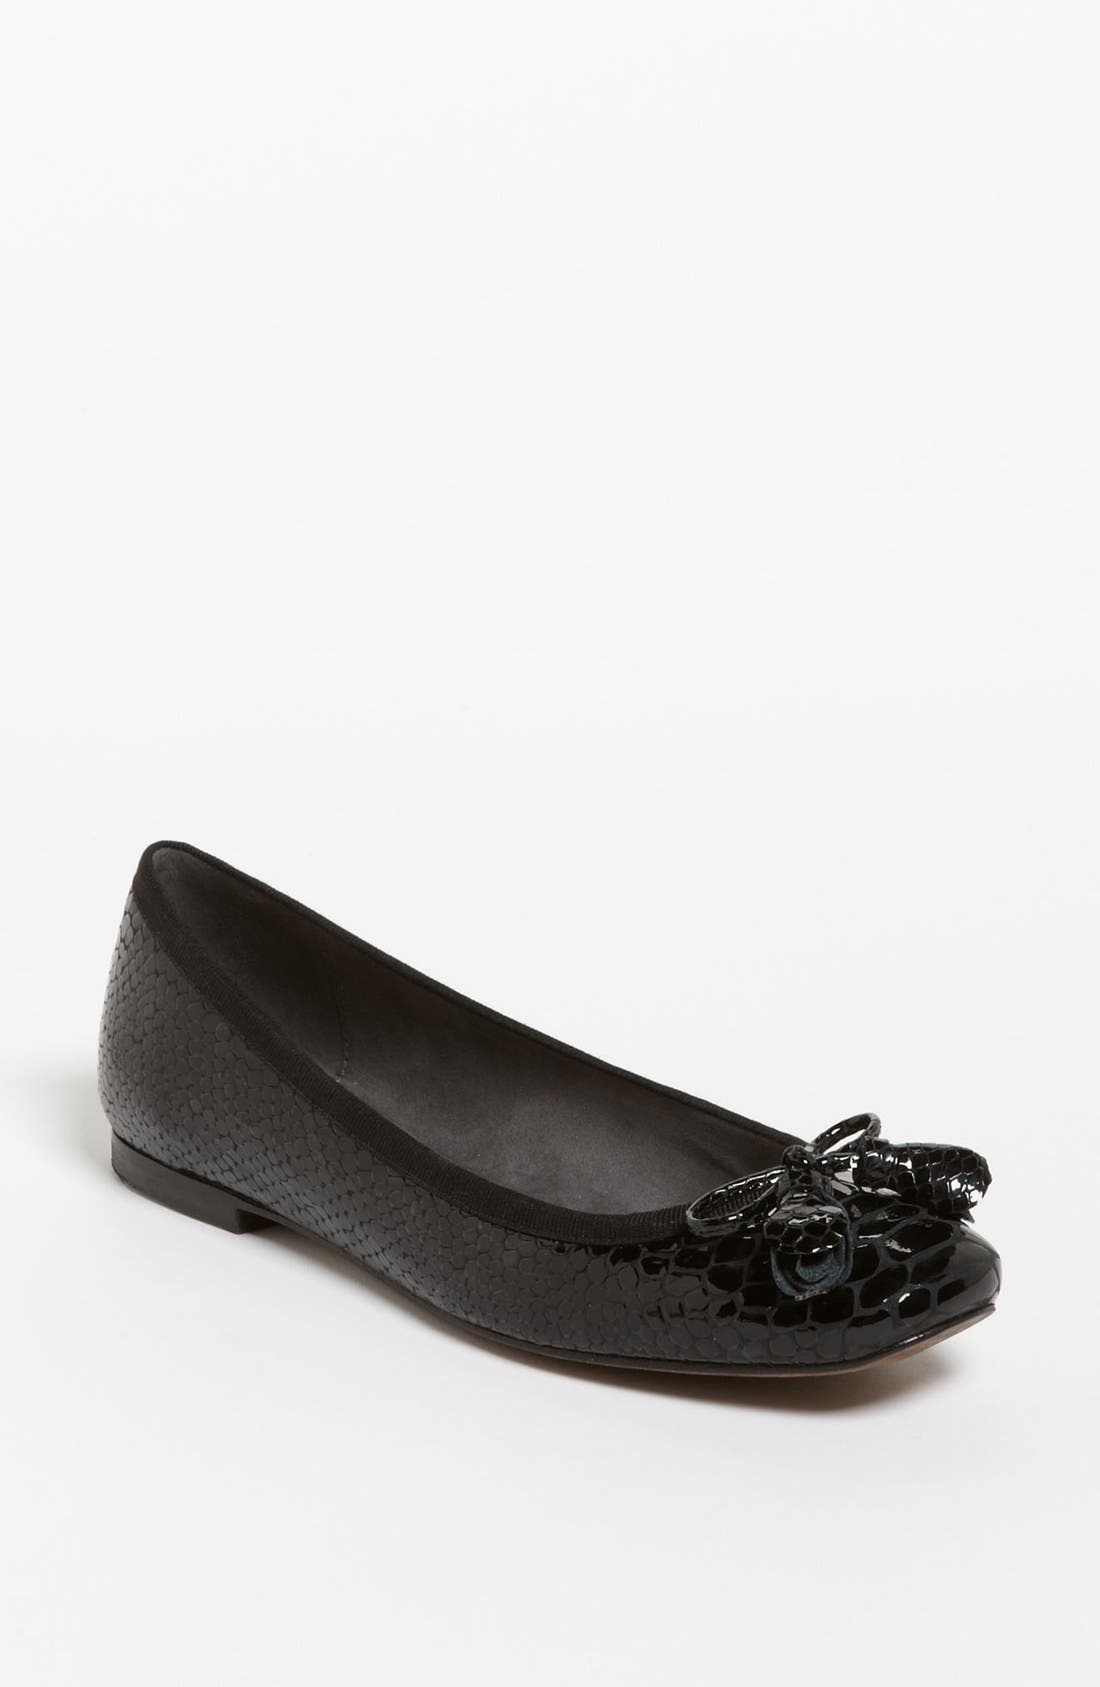 Alternate Image 1 Selected - Stuart Weitzman 'Bowflat' Ballet Flat